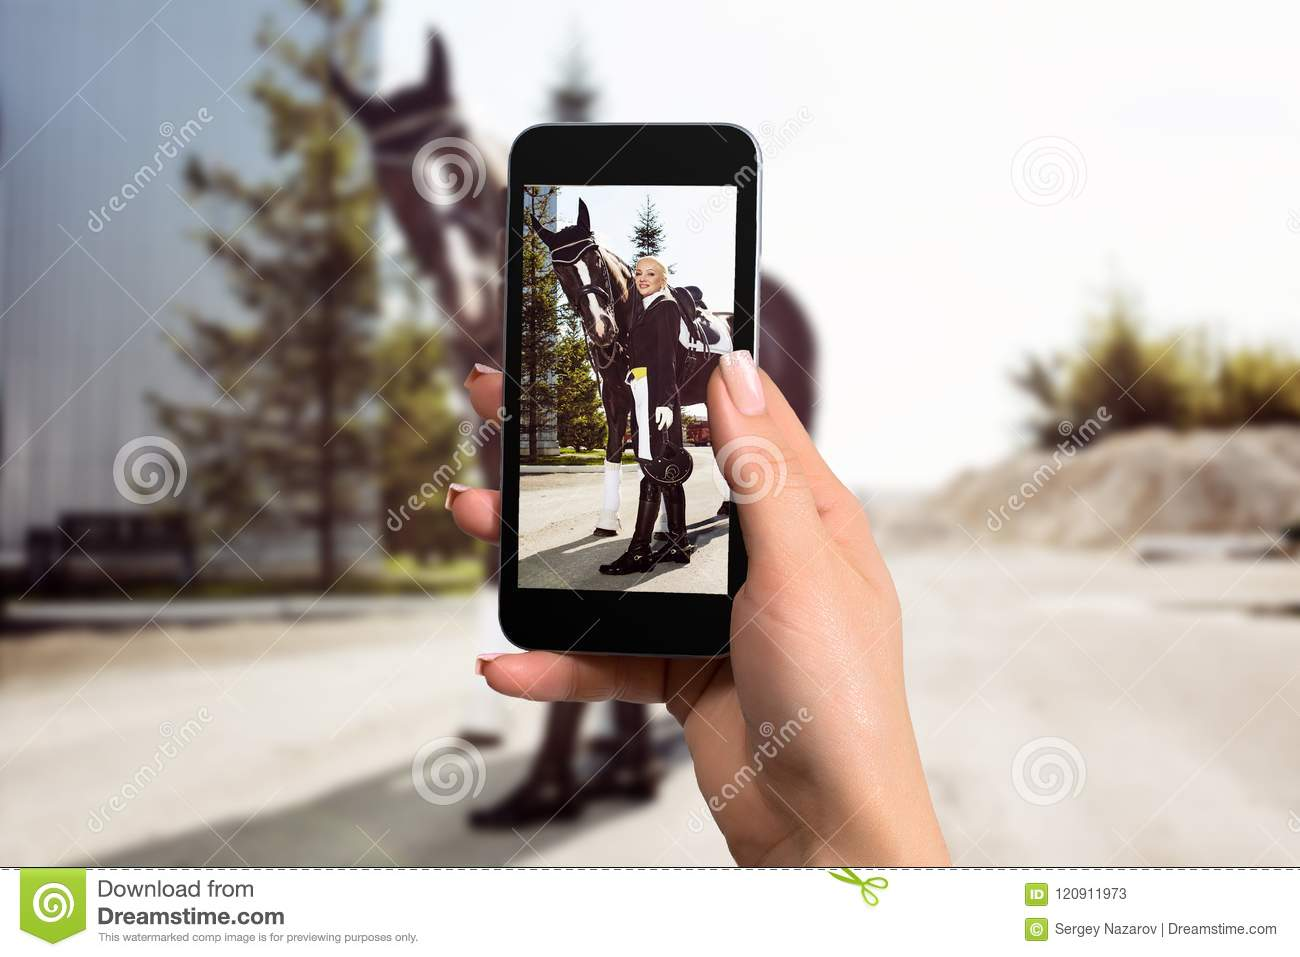 Women hand holding mobile smartphone taking picture of woman rider with a horse.